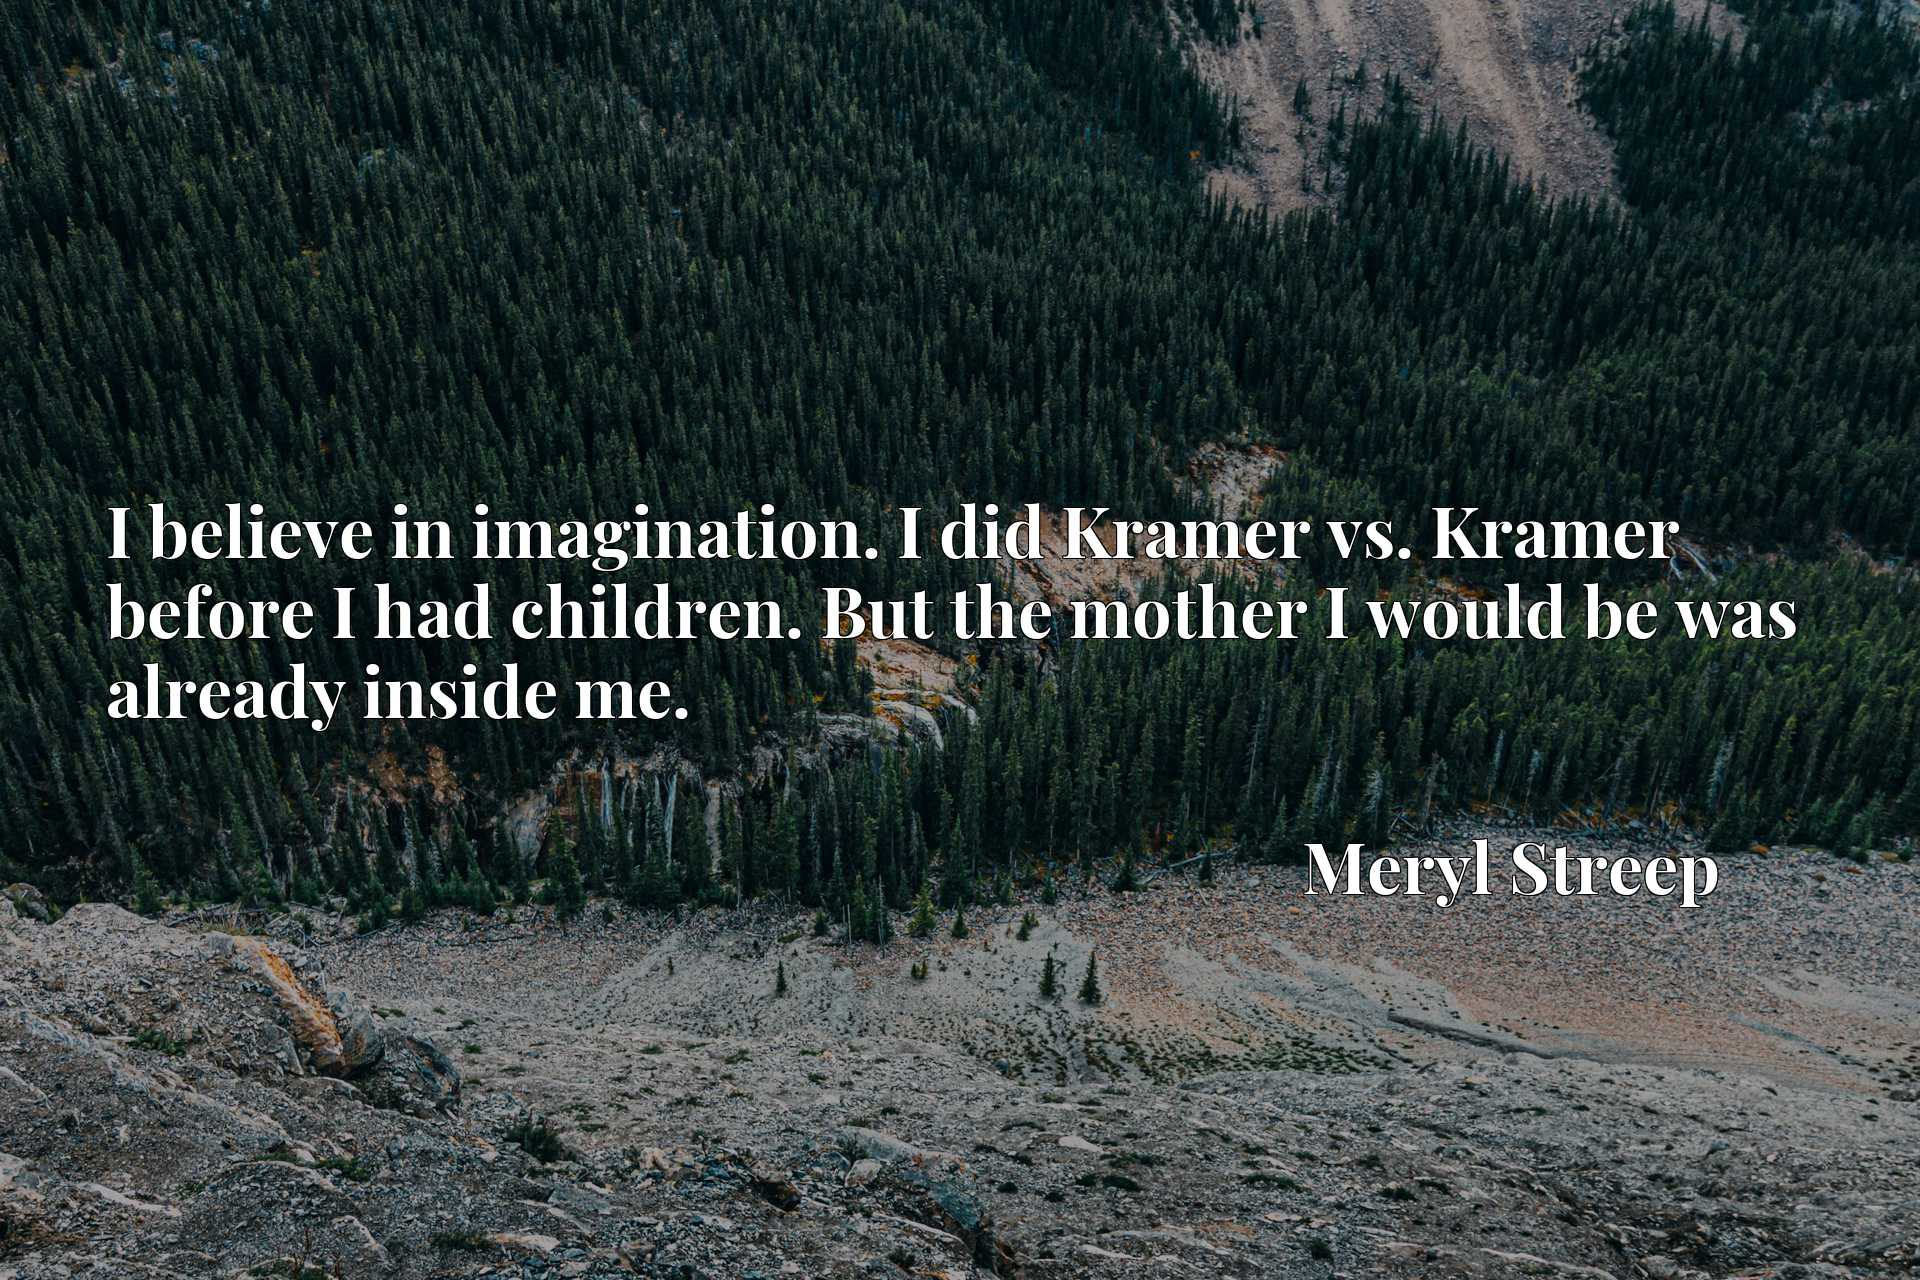 Quote Picture :I believe in imagination. I did Kramer vs. Kramer before I had children. But the mother I would be was already inside me.